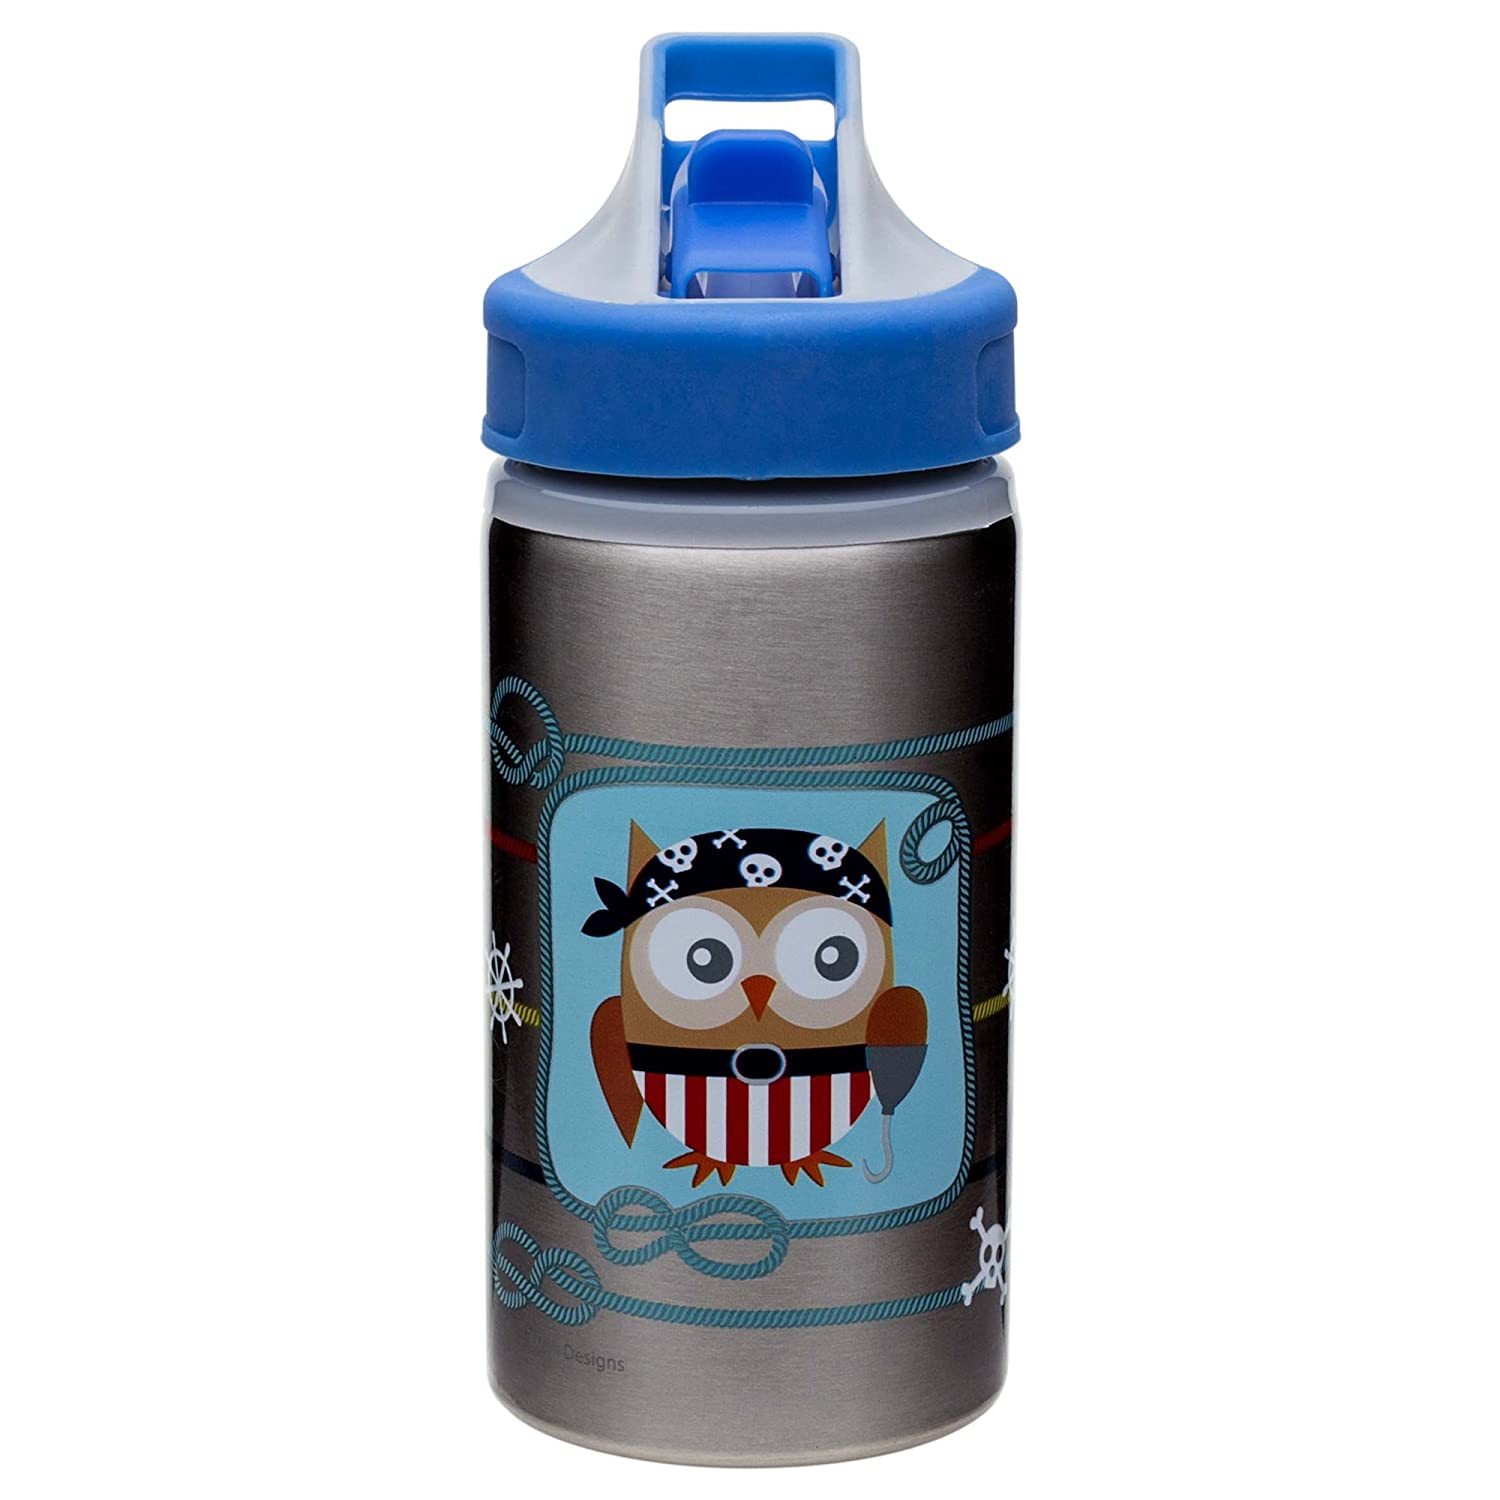 Designs Toddlerific Stainless Steel Sports Water Bottle with Pirate Owl Graphics Leak-proof Break-resistant and BPA- Free Zak Designs 6714-R771 Flip-up Spout Zak 15.5 oz